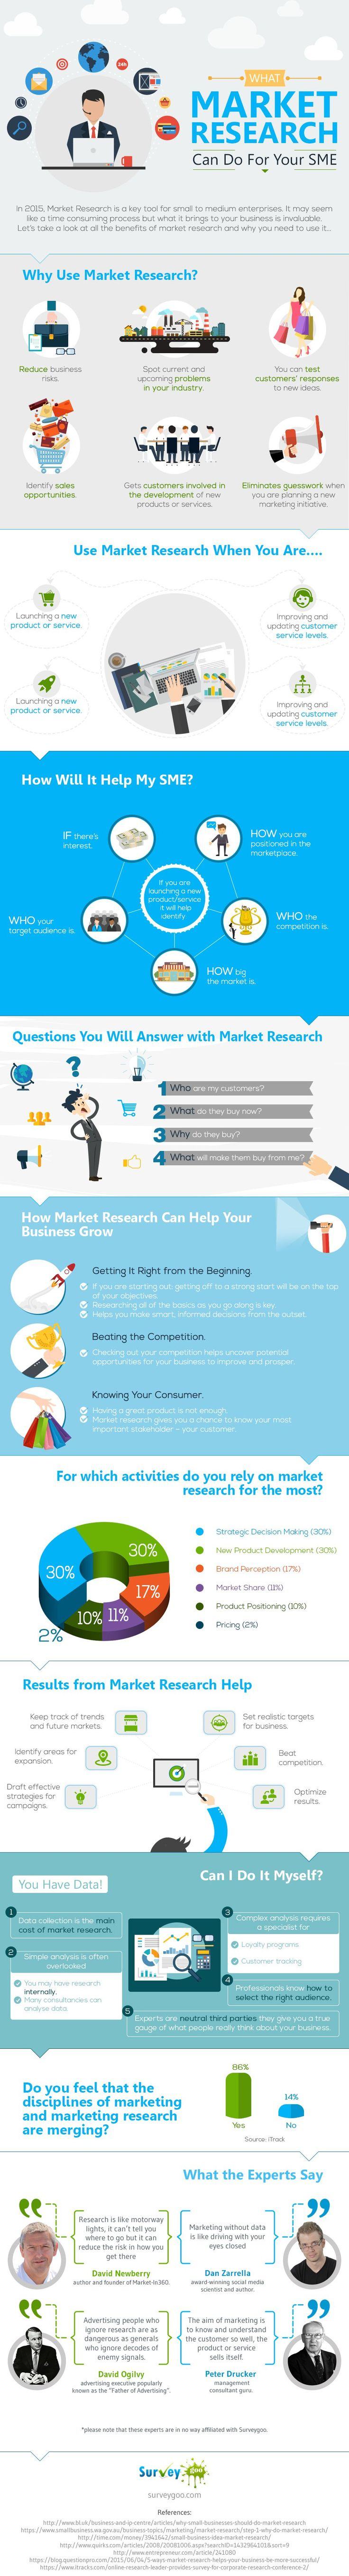 What market research can do for your SME [Infographic]  Smart Insights Digital Marketing Advice